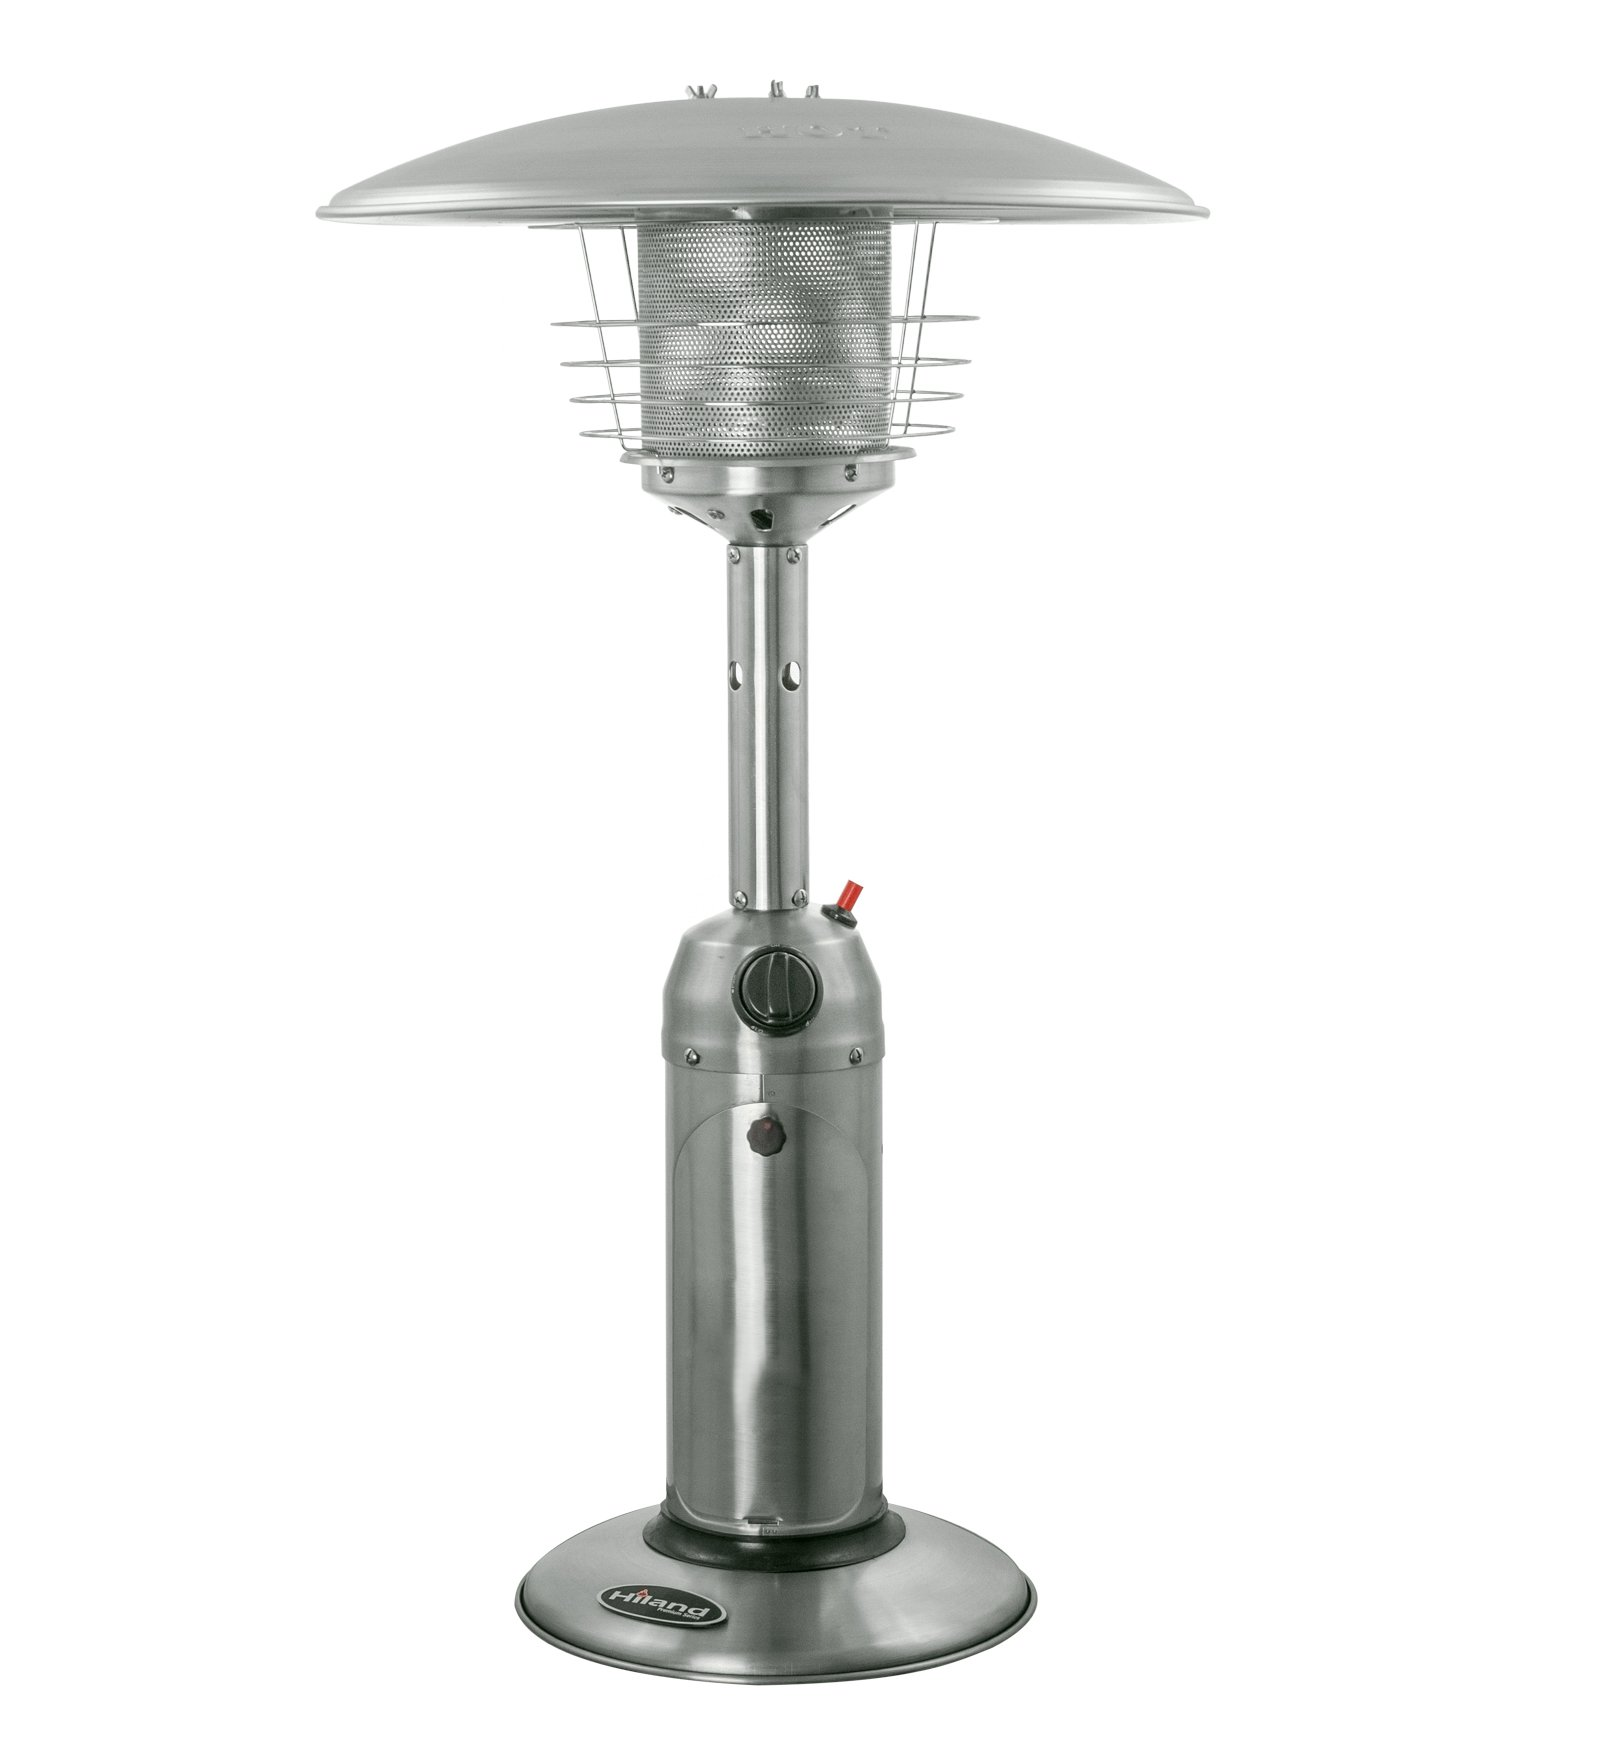 Hiland HLDS032-B Portable Table Top Patio Heater, 11,000 BTU, Use 1lb or 20Lb Propane Tank, Stainless Finish by Hiland